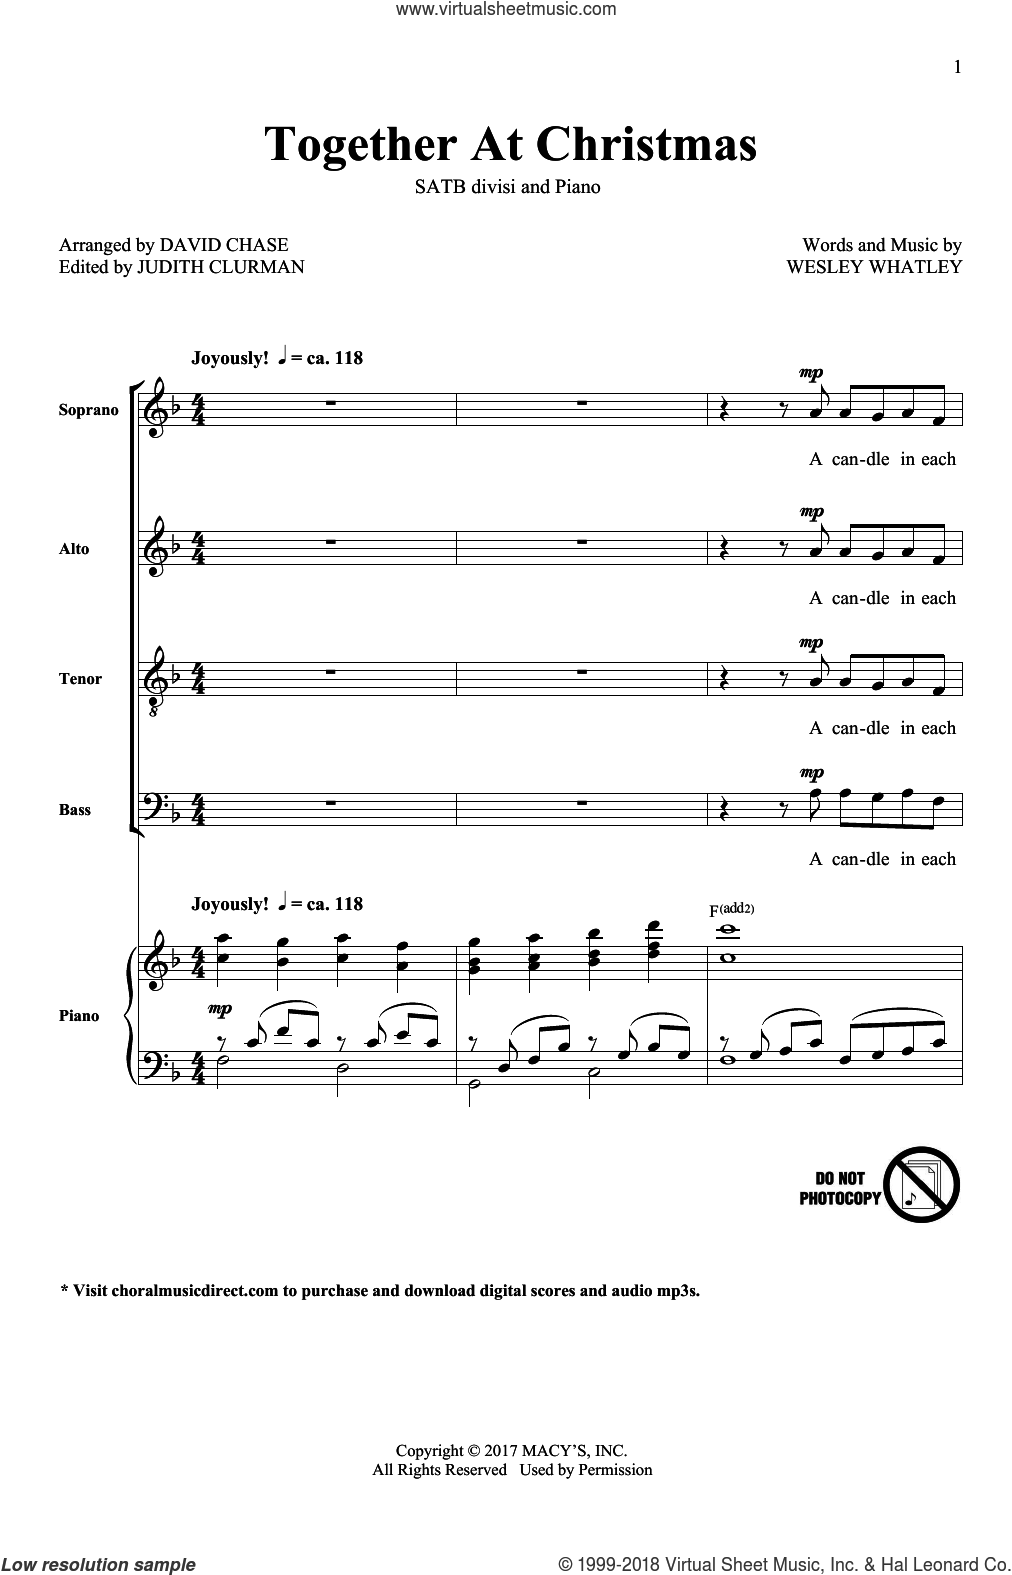 Together At Christmas sheet music for choir (SATB: soprano, alto, tenor, bass) by David Chase and Wesley Whatley, intermediate skill level